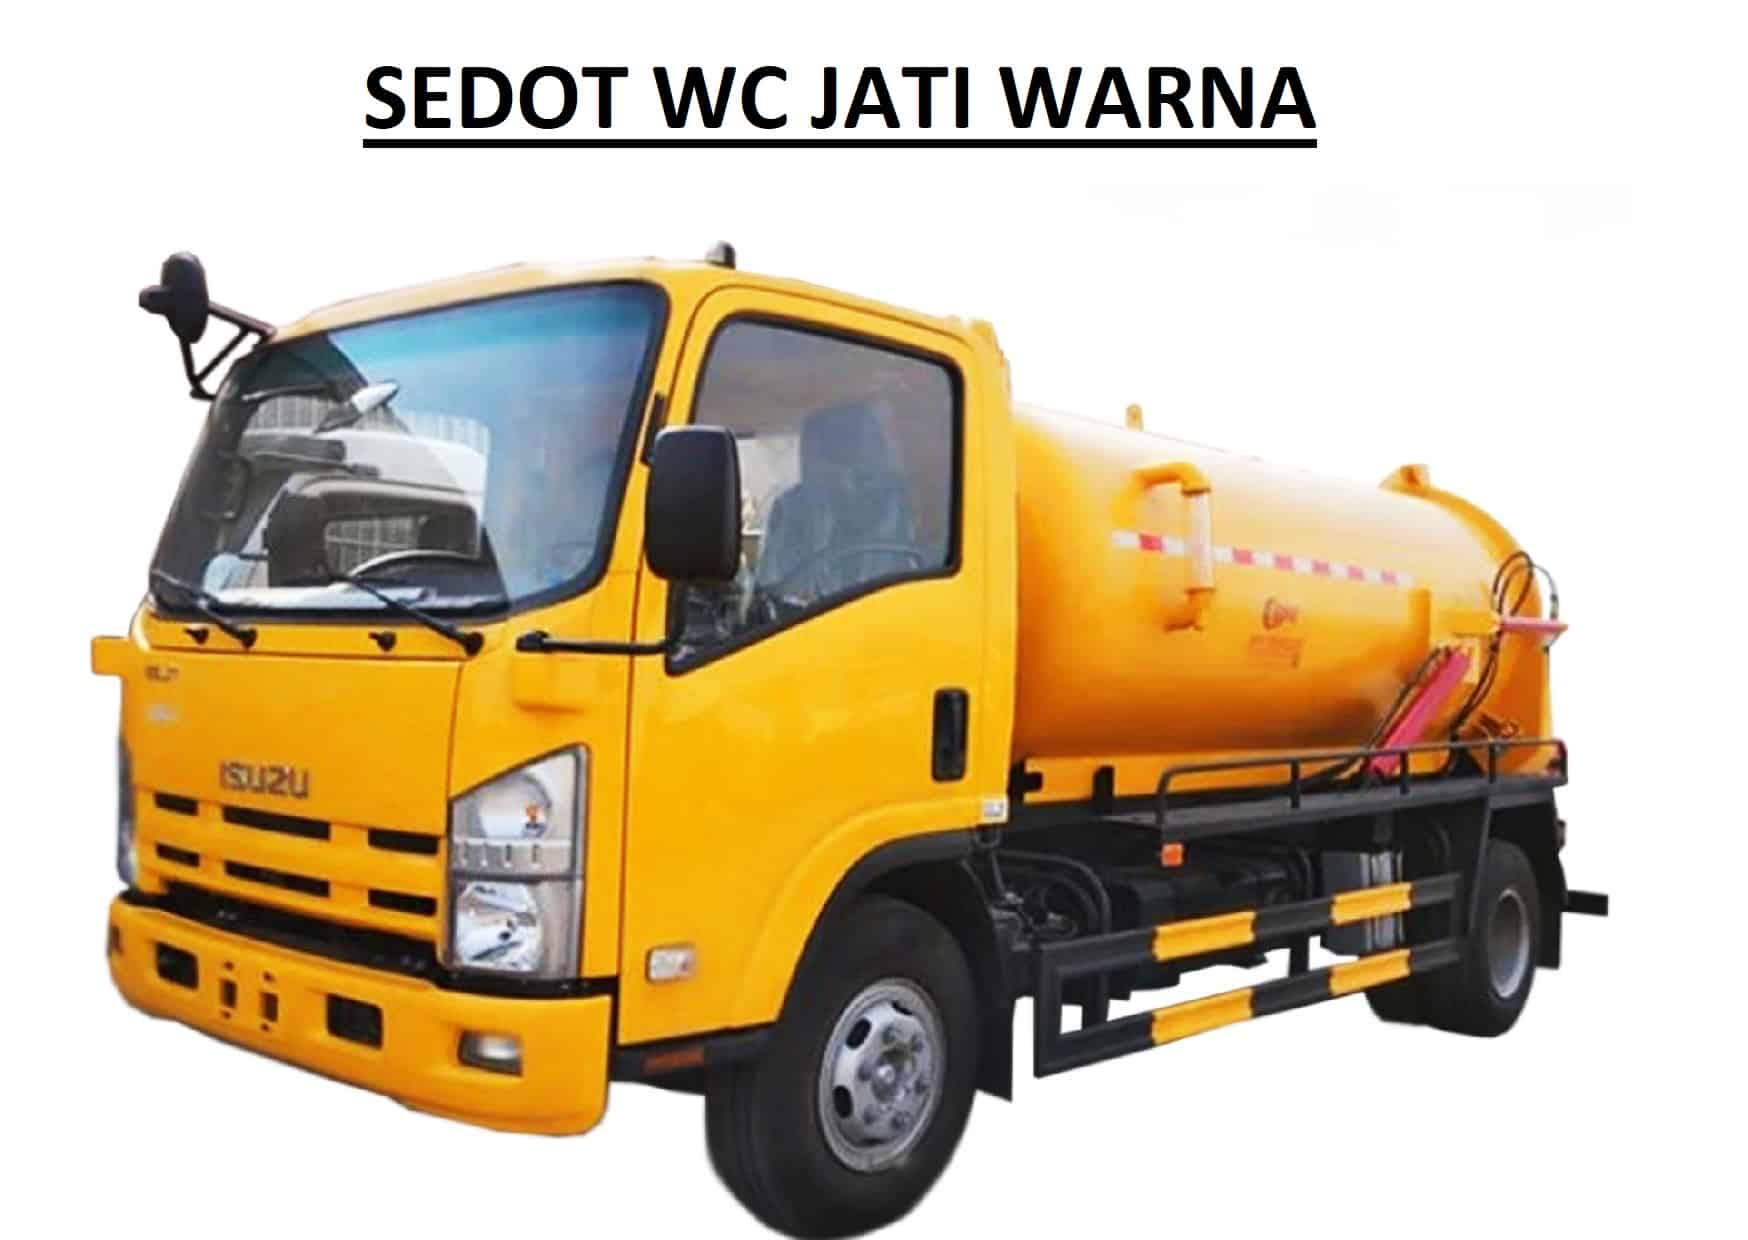 Sedot WC Jati Warna